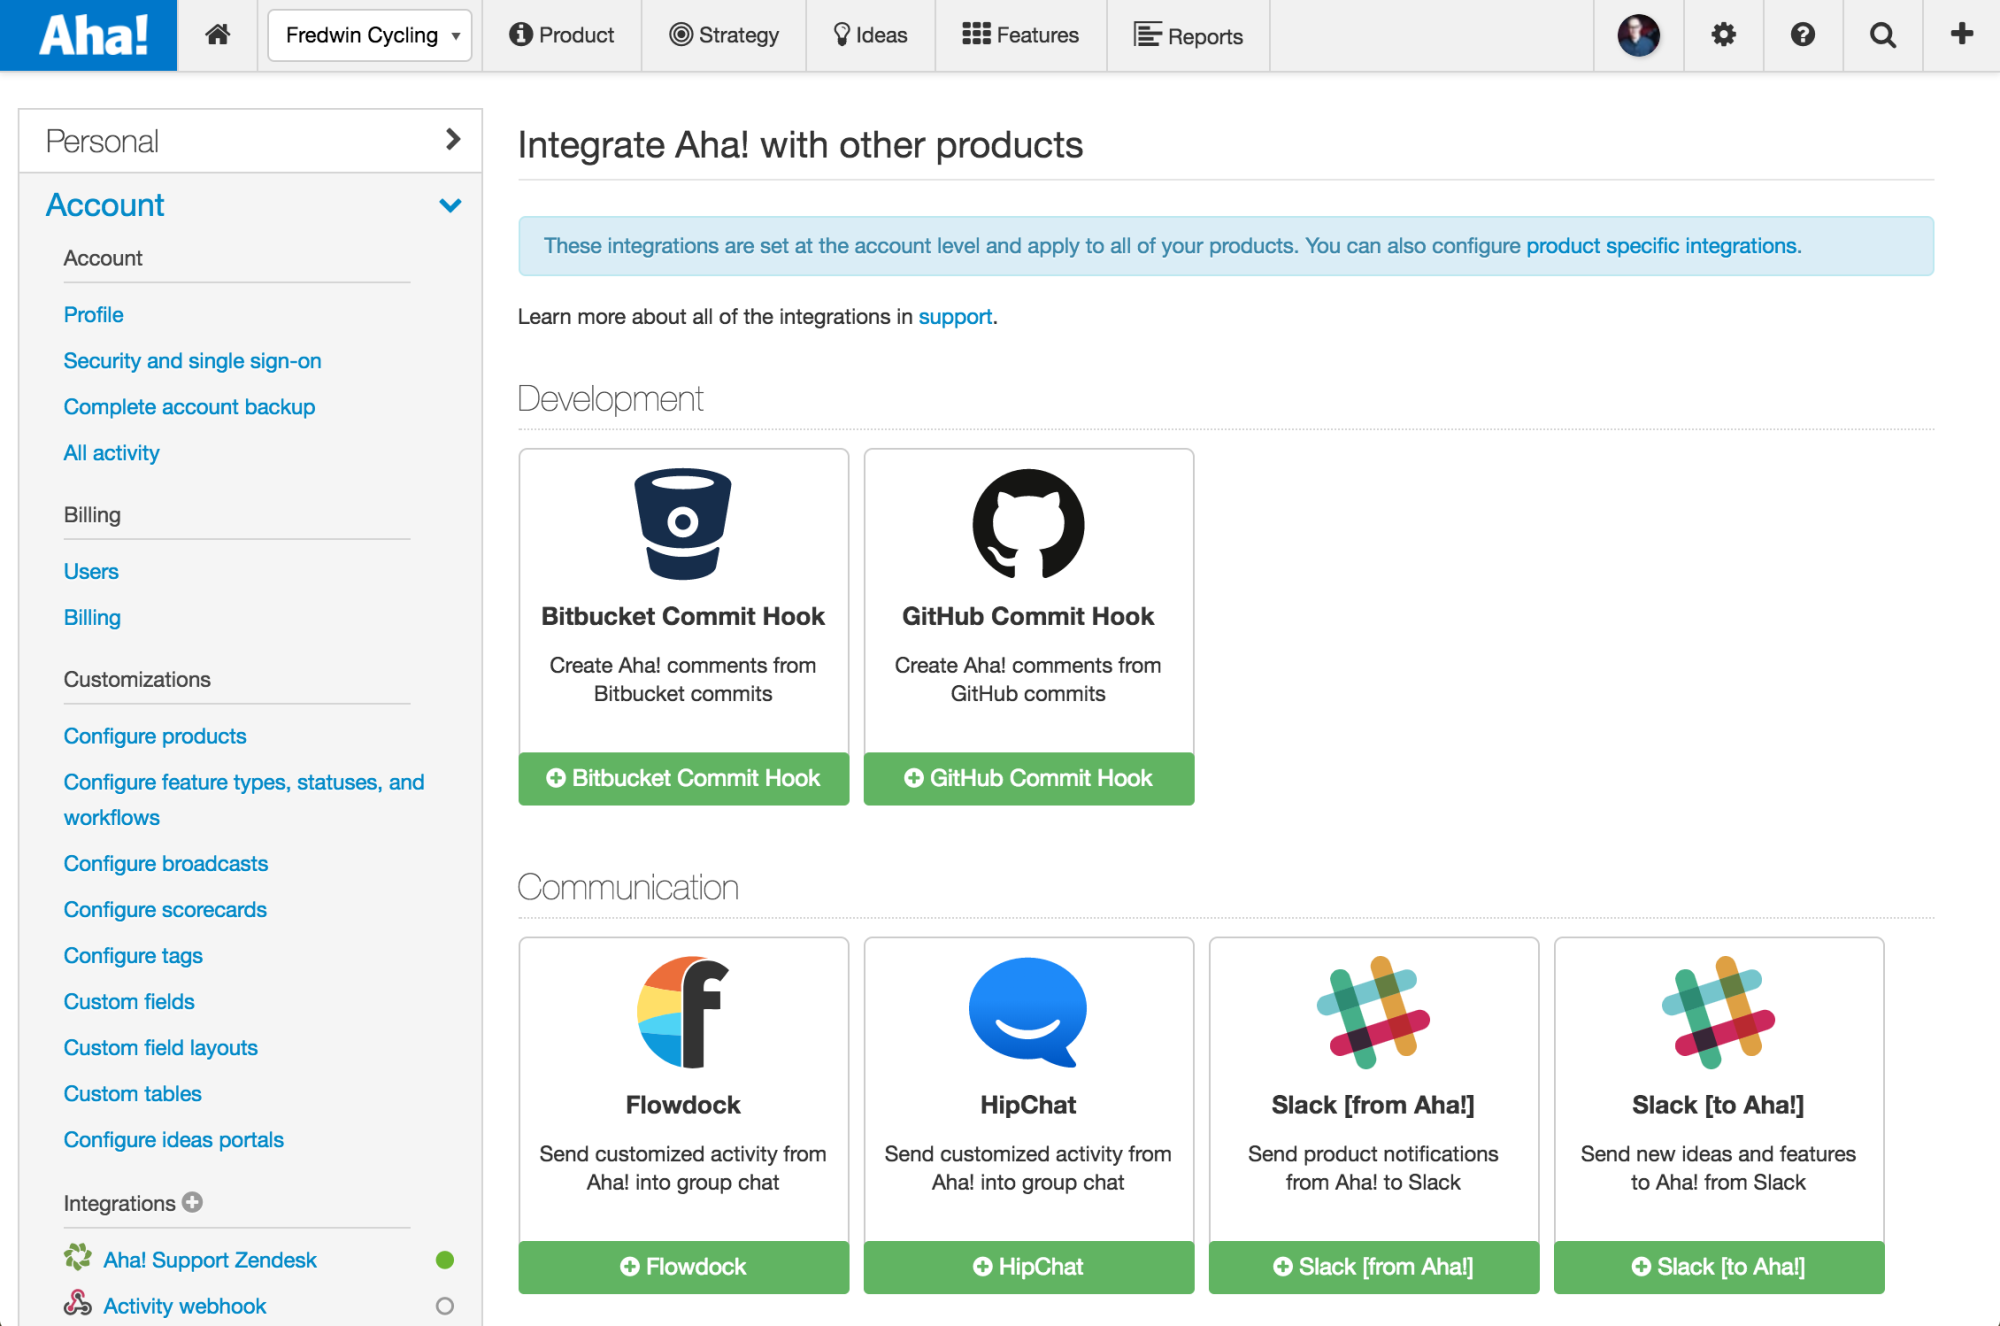 Blog - Just Launched! — New Aha! + Slack Integration for Product Management - inline image